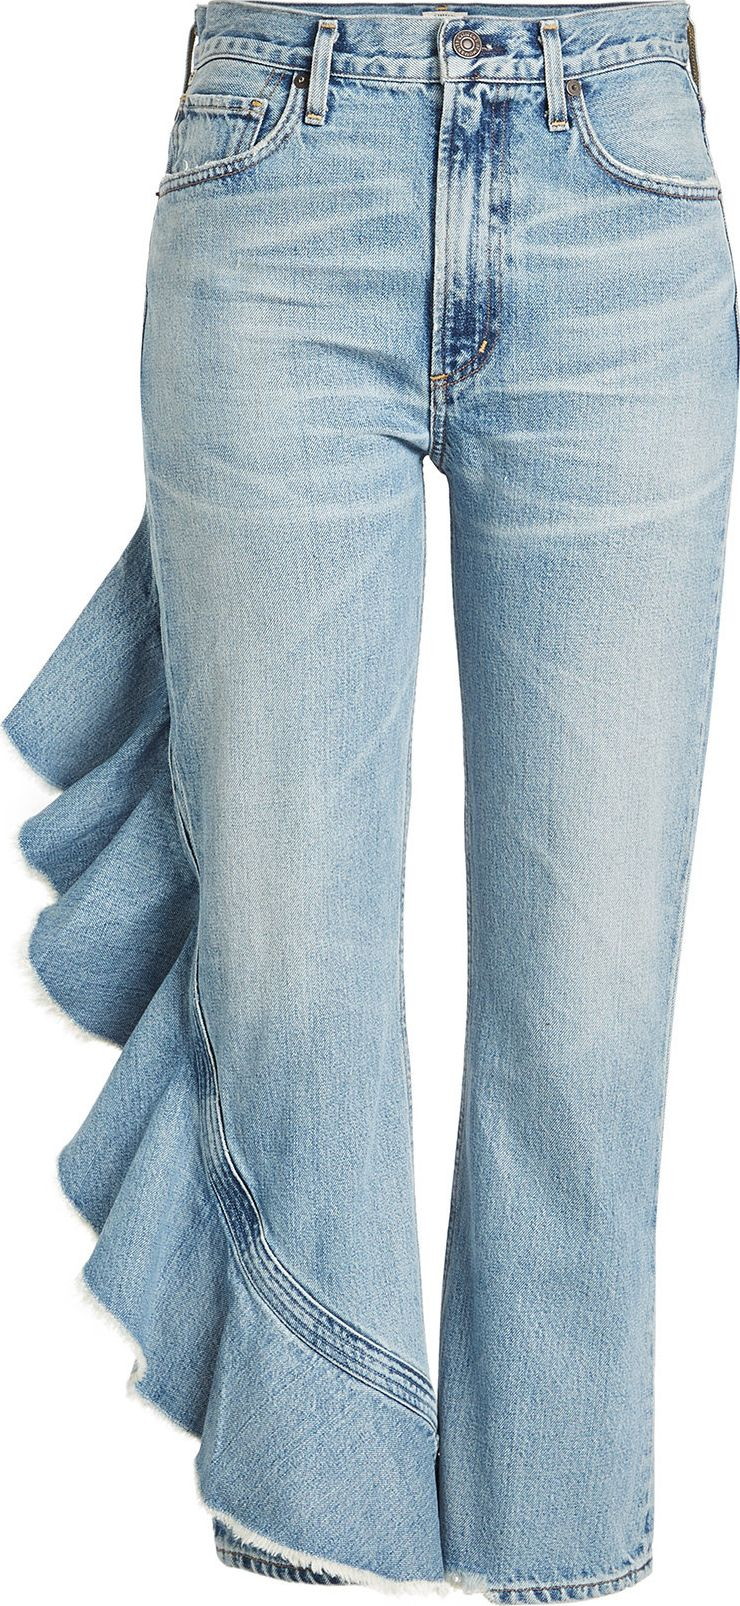 Citizens Of Humanity - Cropped Jeans with Ruffle Trim